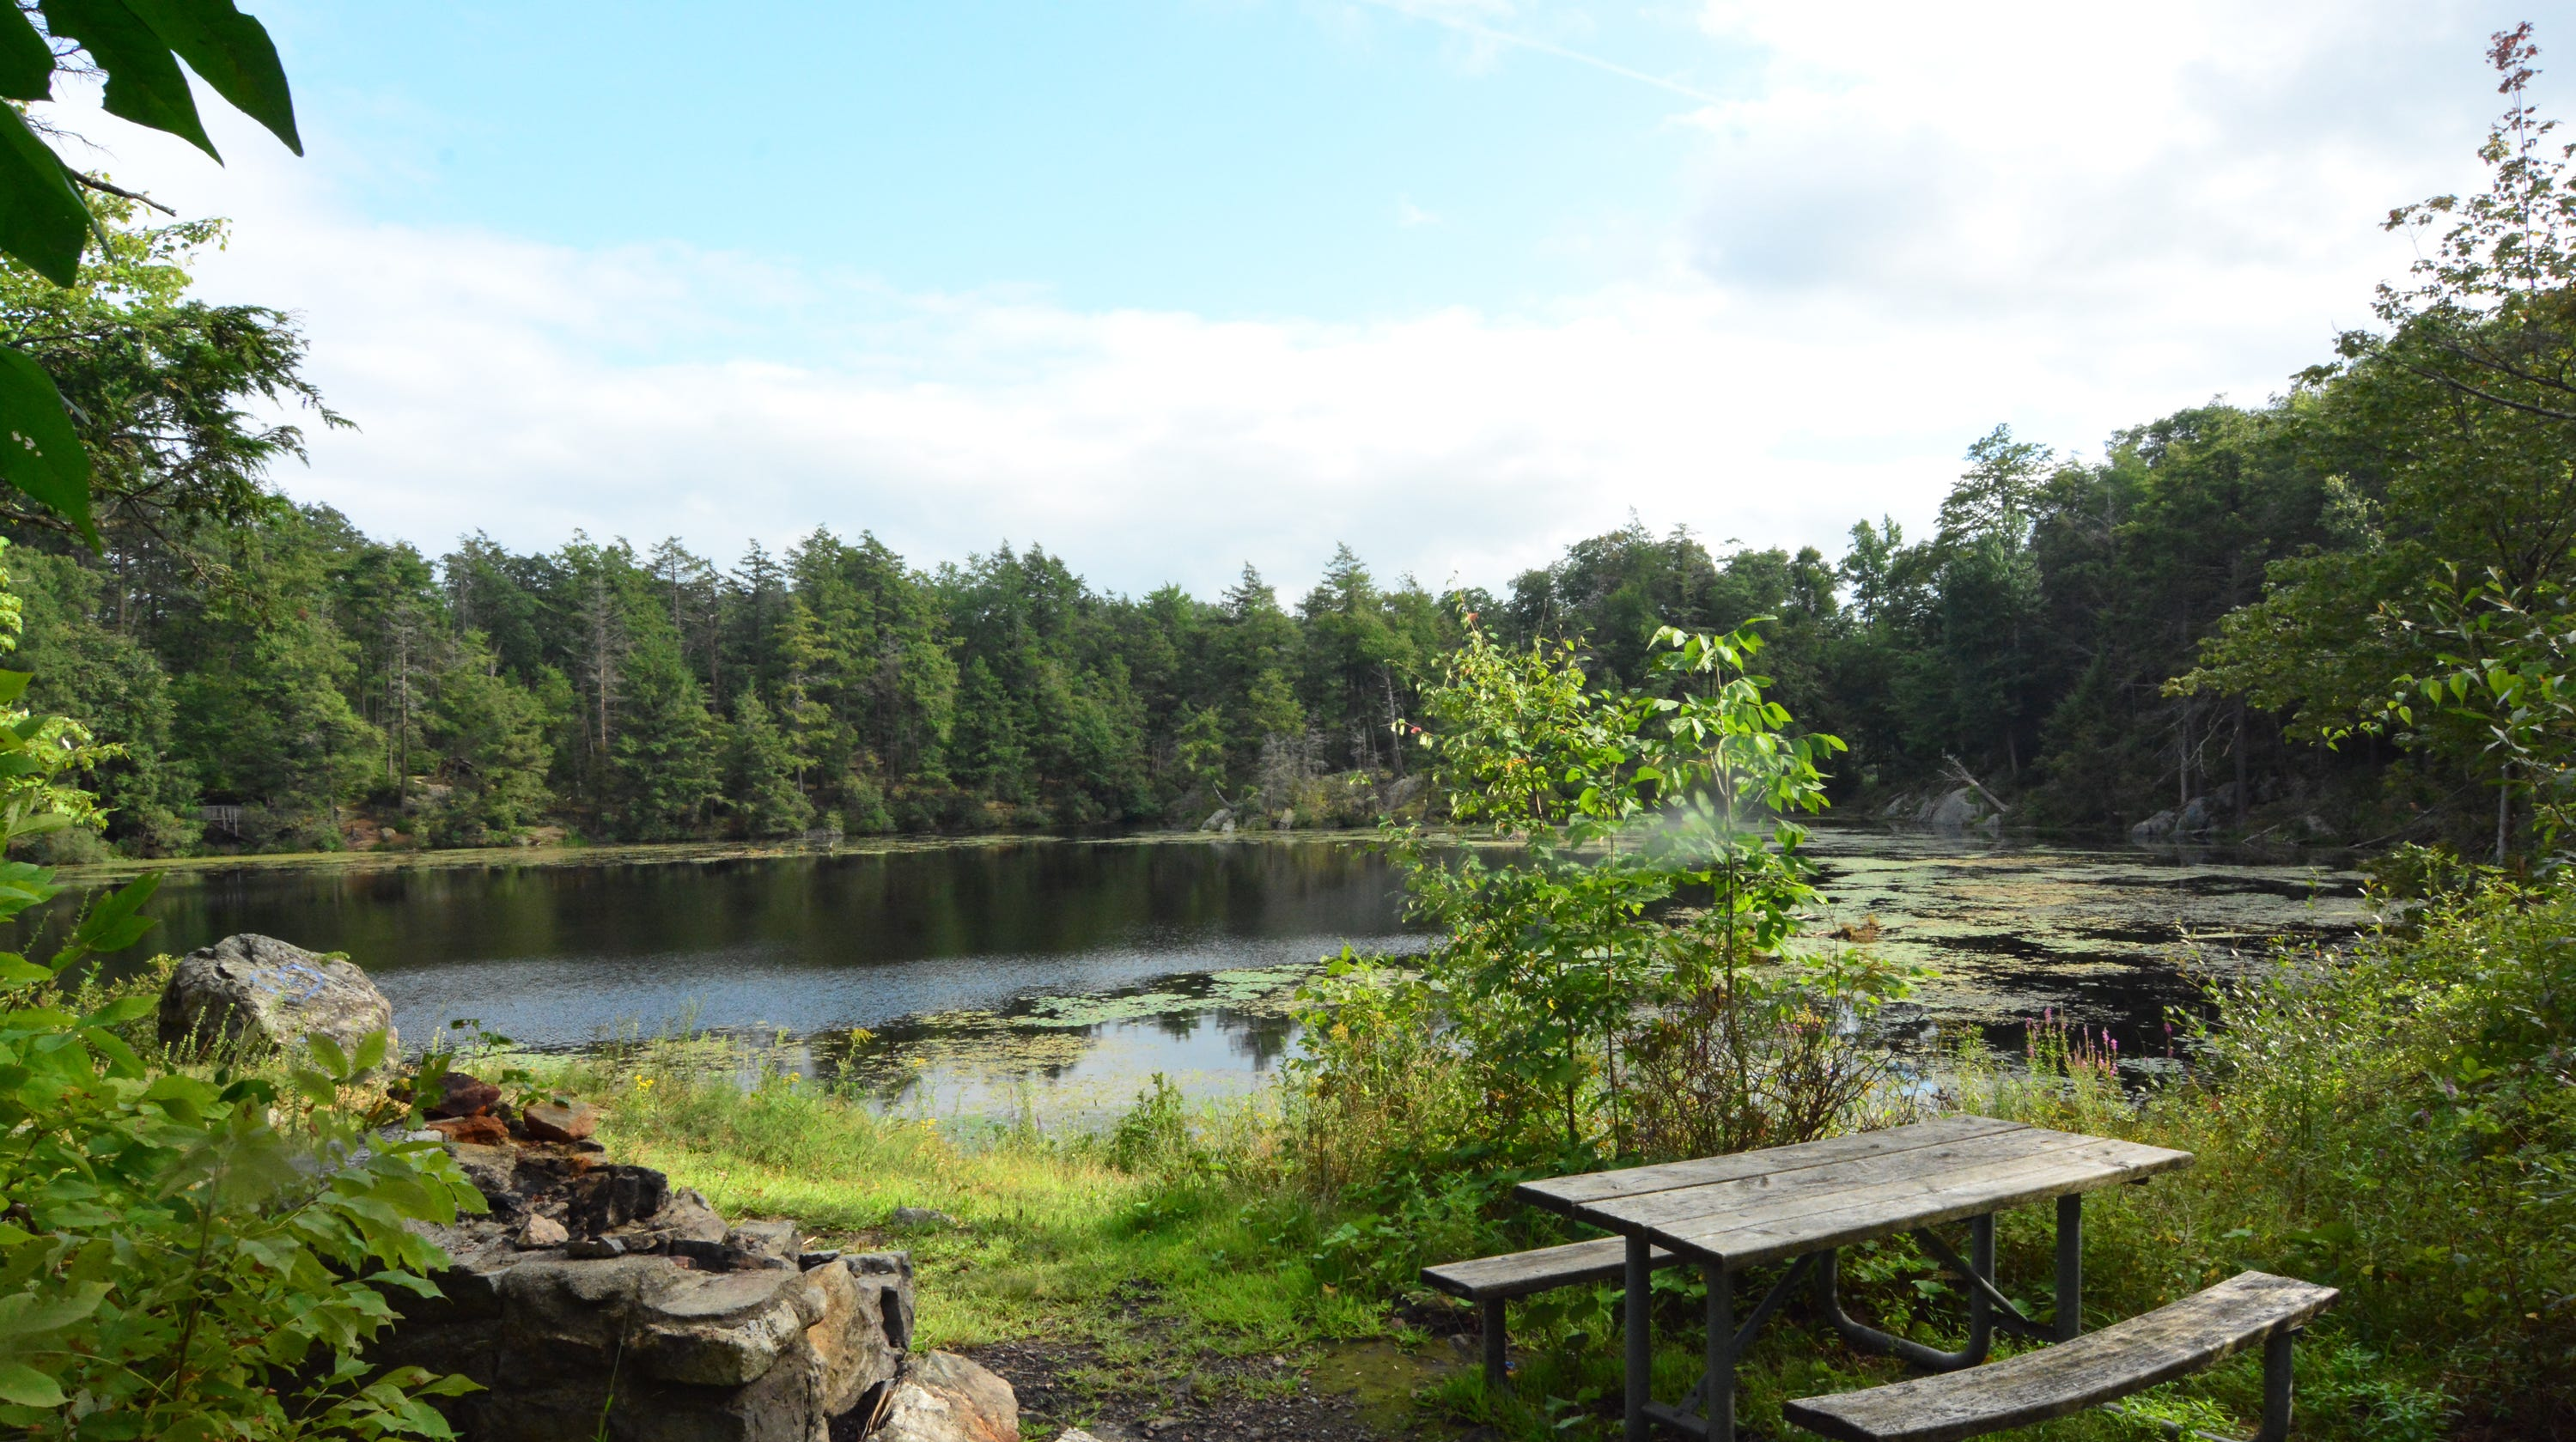 Pelton Pond in Hopewell Junction is a pleasant spot to picnic.